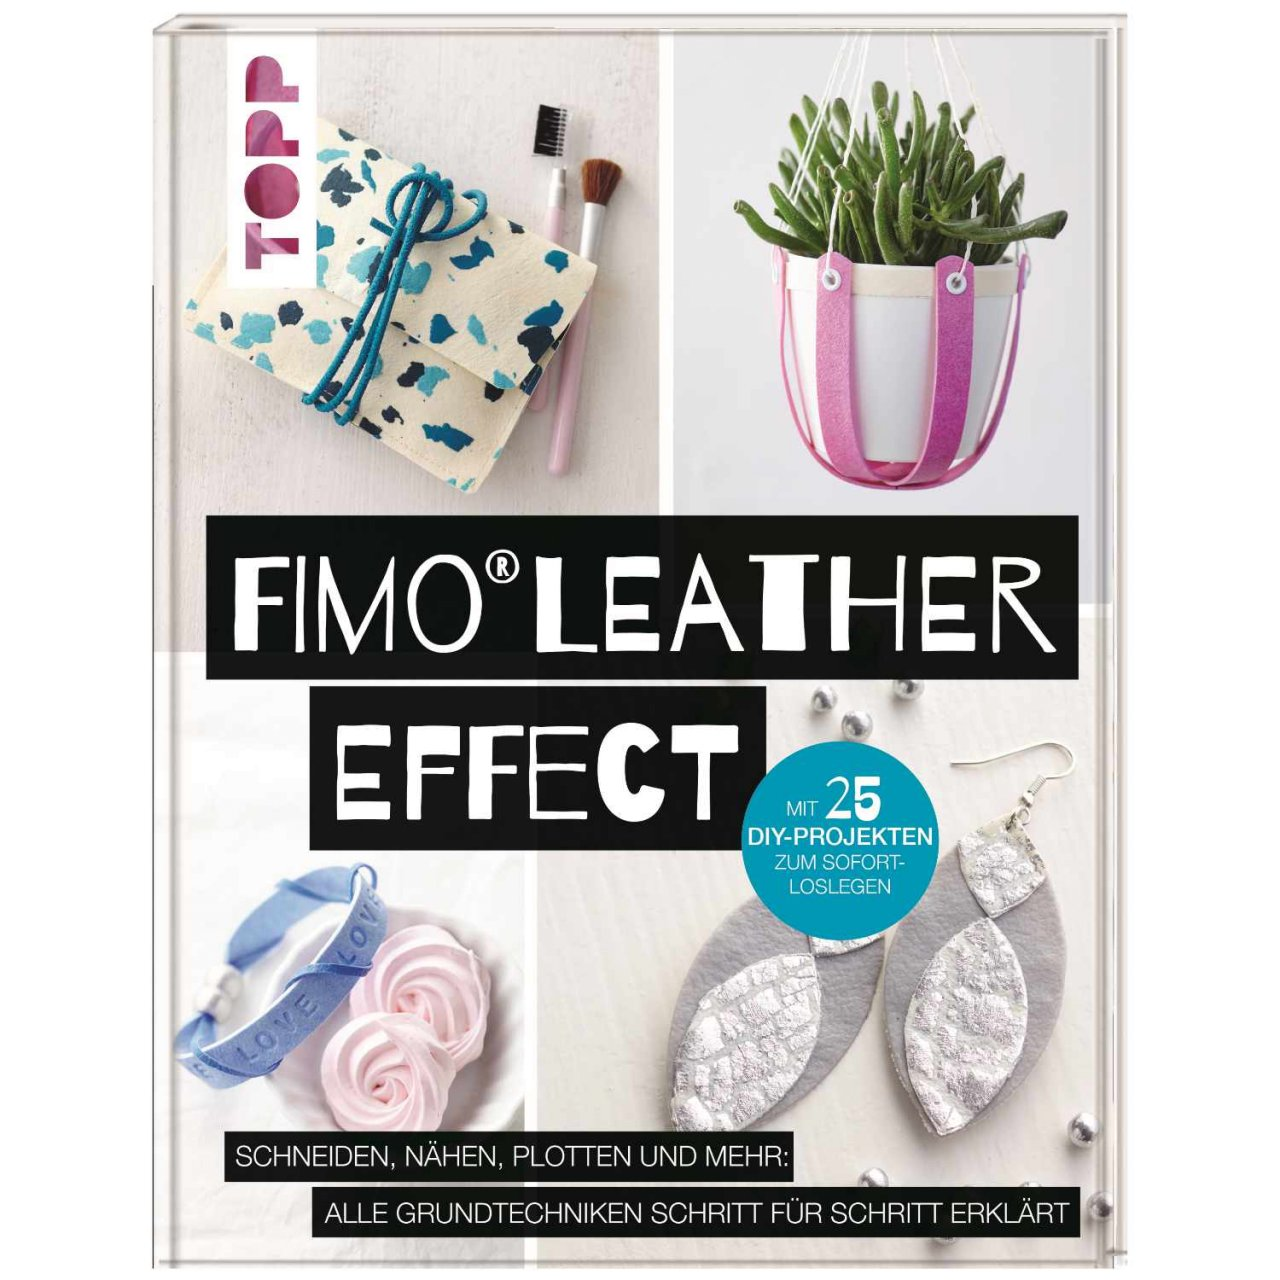 TOPP FIMO Leather Effect von TOPP